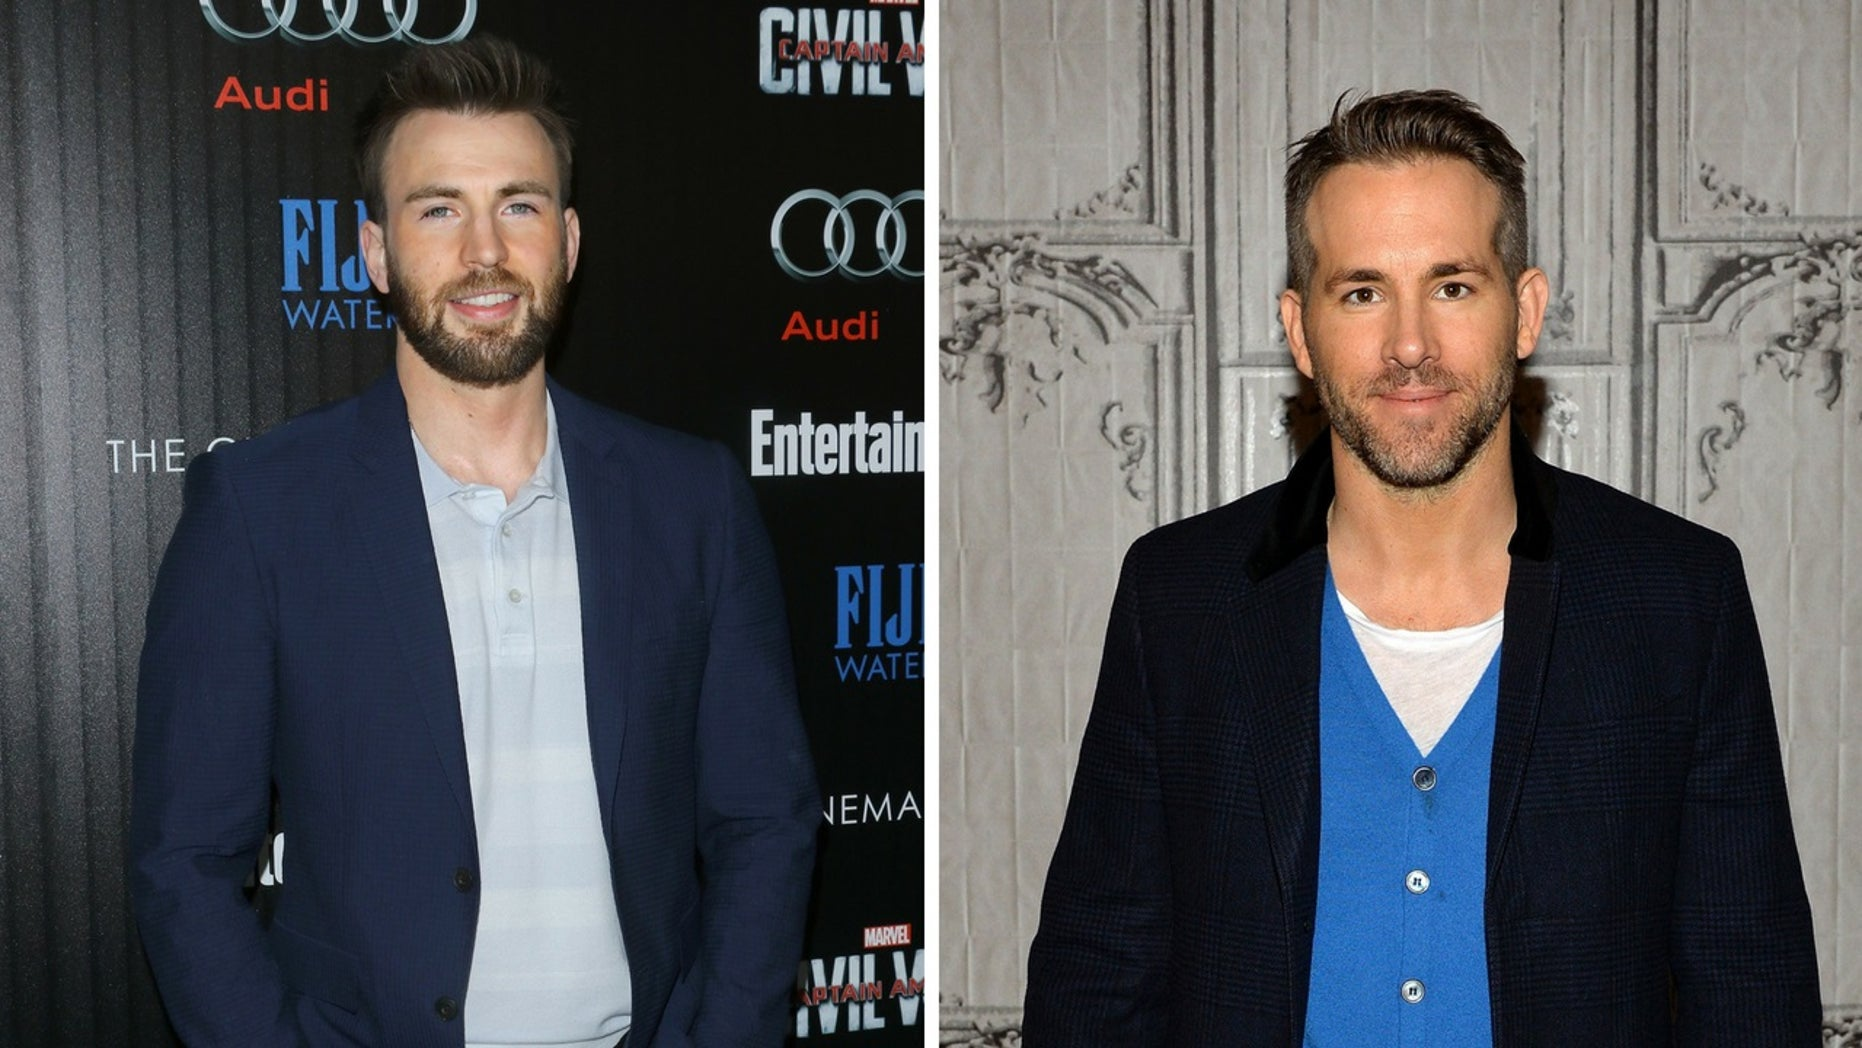 Chris Evans, Ryan Reynolds and other actors who play superheroes teamed together to send kind words to an ill fan.